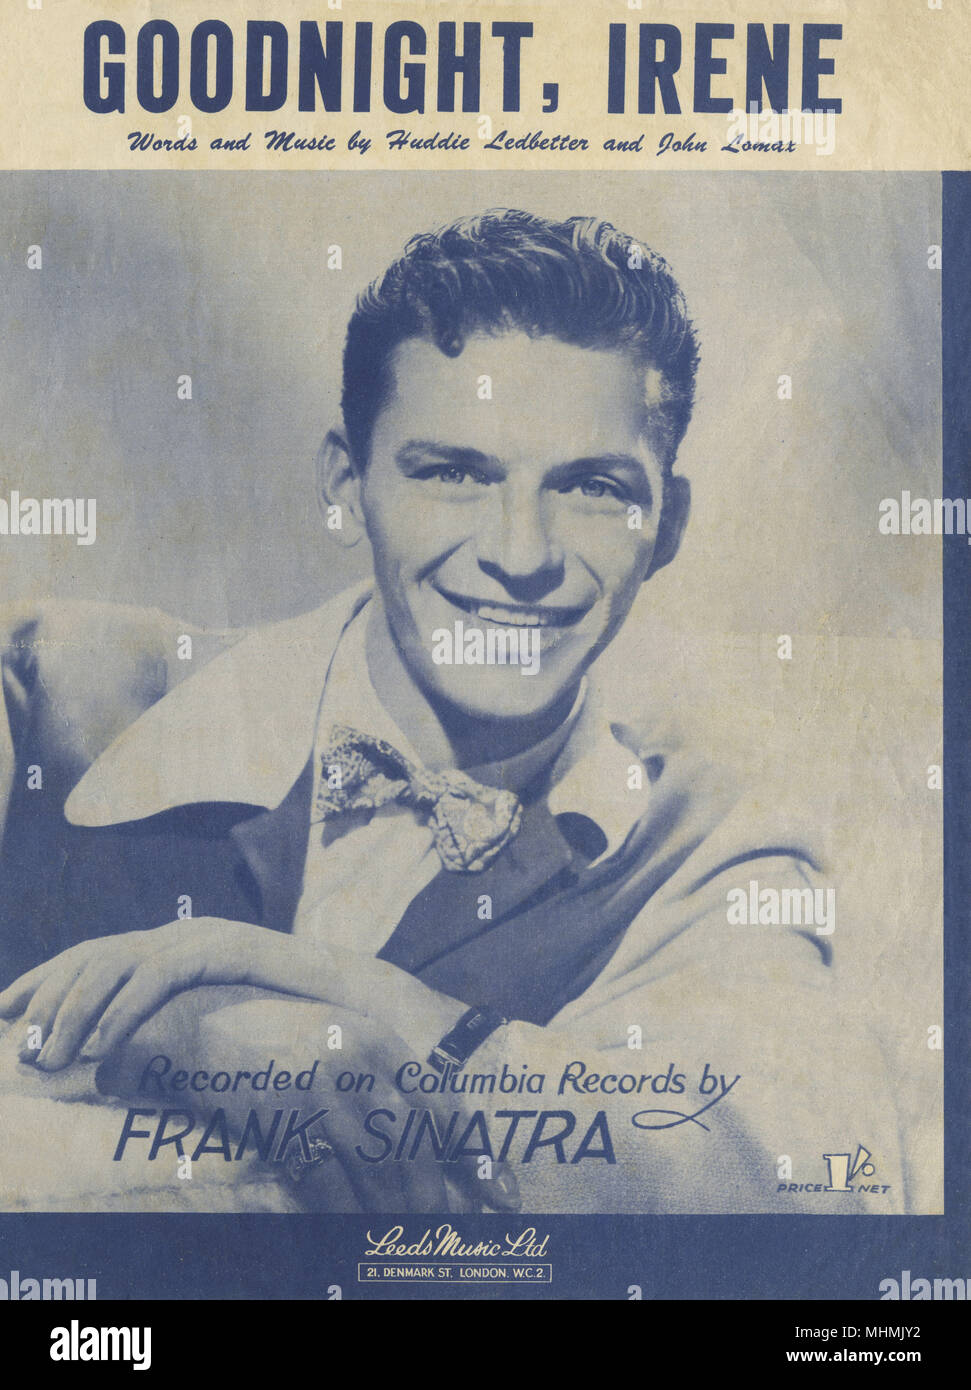 FRANK SINATRA American singer and film actor: 'Goodnight Irene'      Date: 1915 - 1998 - Stock Image